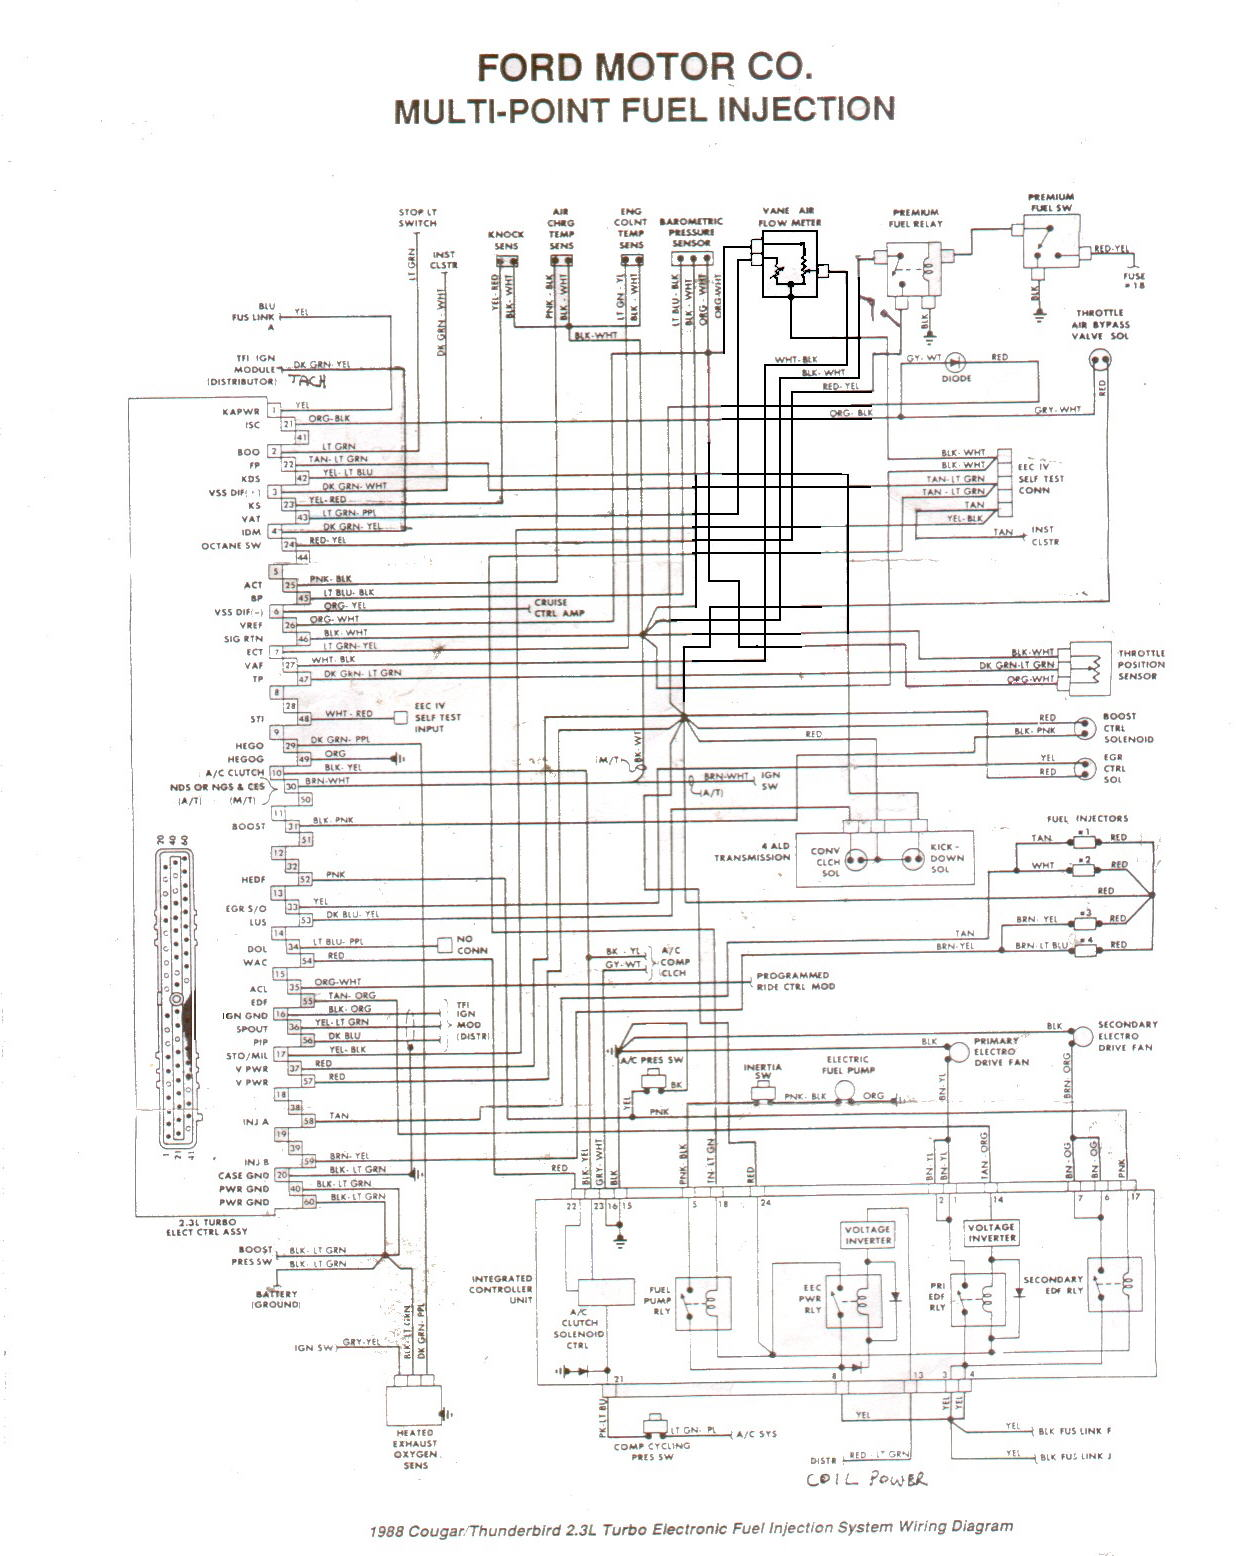 [DIAGRAM_5LK]  7....RX-7 Wiring Harness Connector ID and Circuit Locations.... | Mazda Rx 7 87 Wiring Schematic |  | grannys.tripod.com